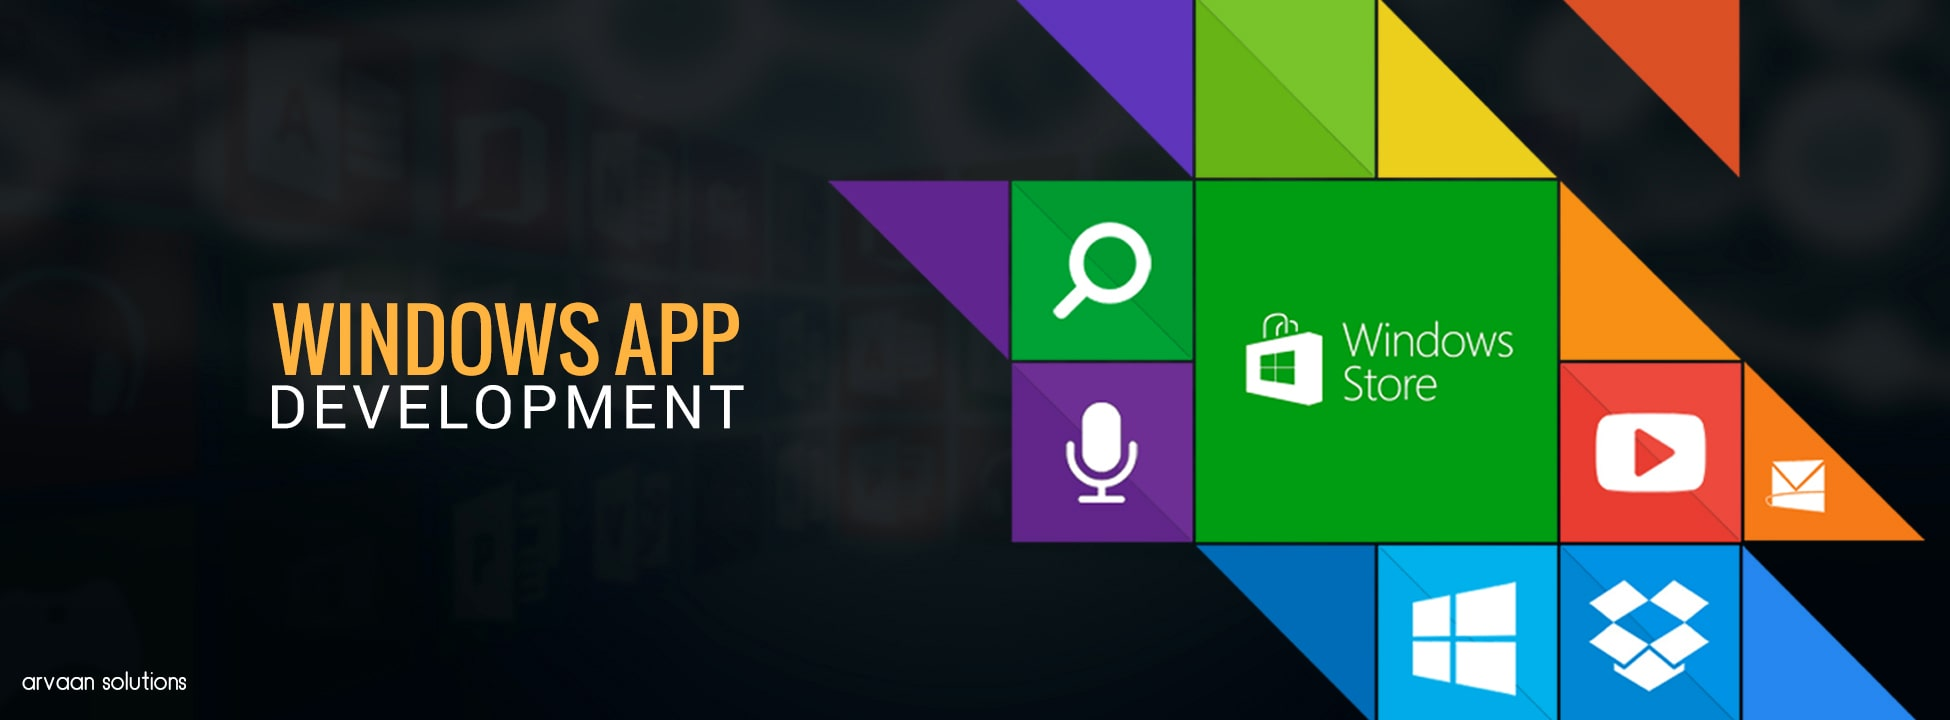 windows_app_development-1